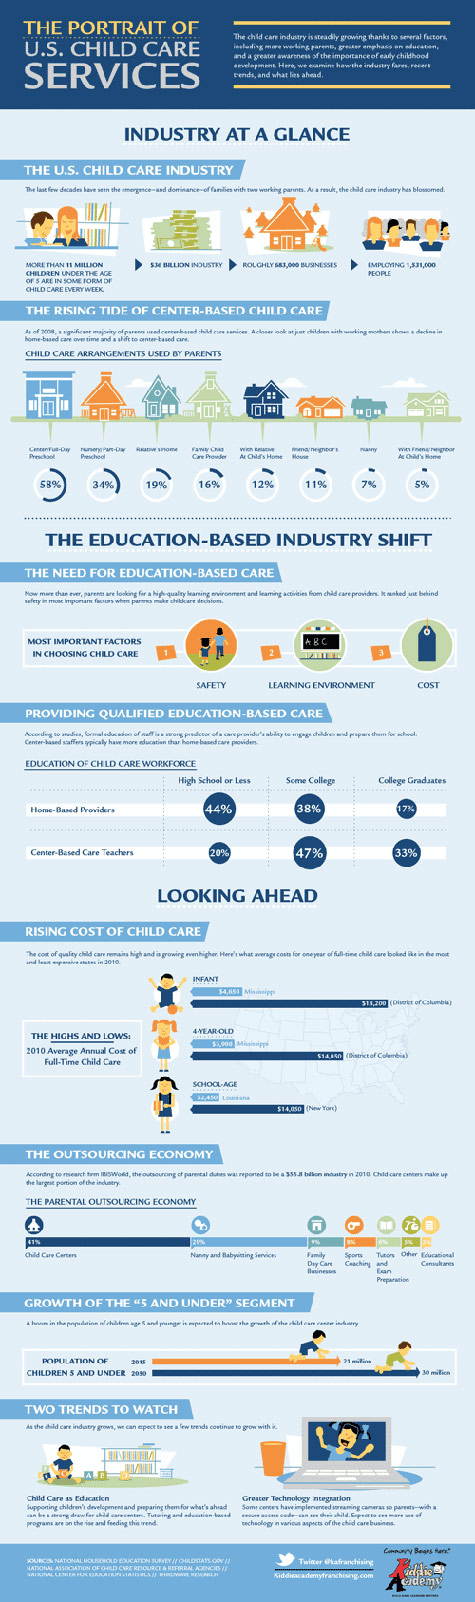 The Portrait of U.S. Child Care Services [Infographic]